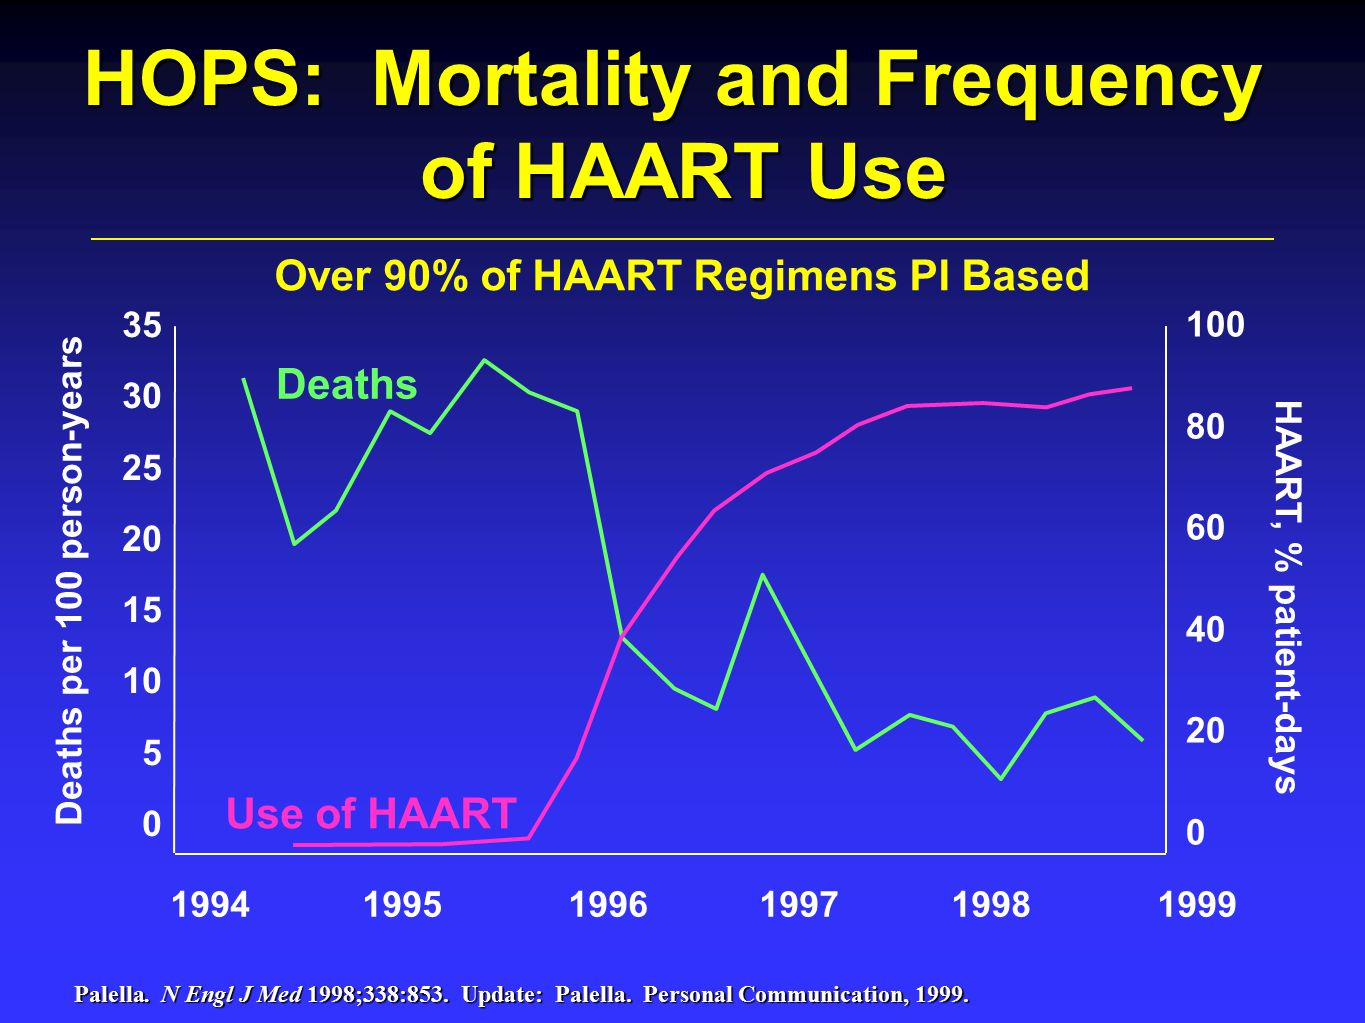 Over 90% of HAART Regimens PI Based 100 80 60 40 20 0 35 30 25 20 15 10 5 0 199419951996199719981999 HOPS: Mortality and Frequency of HAART Use Deaths per 100 person-years Deaths Use of HAART HAART, % patient-days Palella.